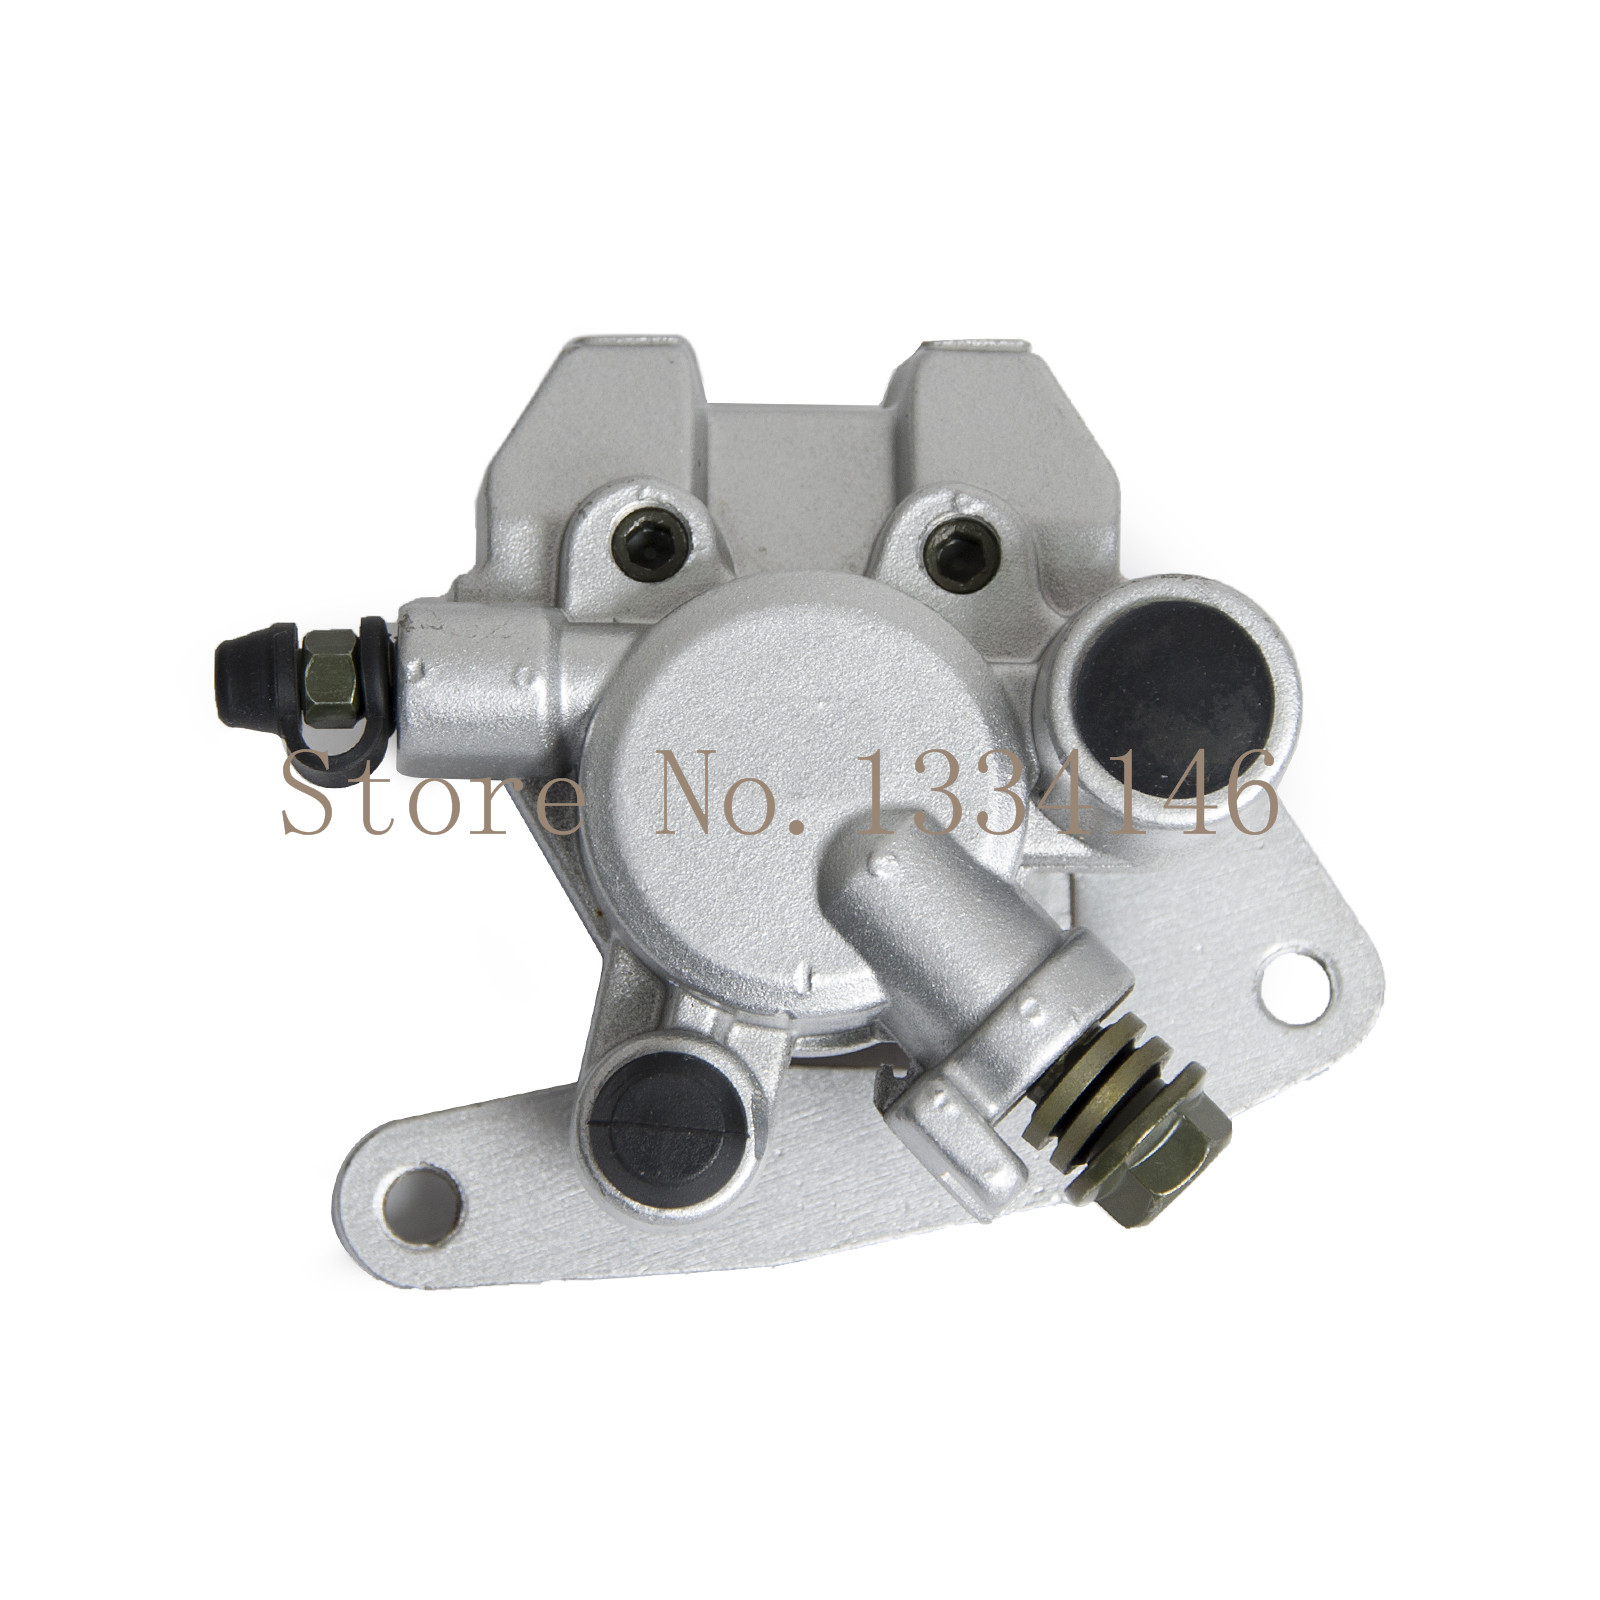 ФОТО LEFT FRONT BRAKE CALIPER WITH PADS FOR YAMAHA RAPTOR 660 01-05 YFM660 WITH PADS